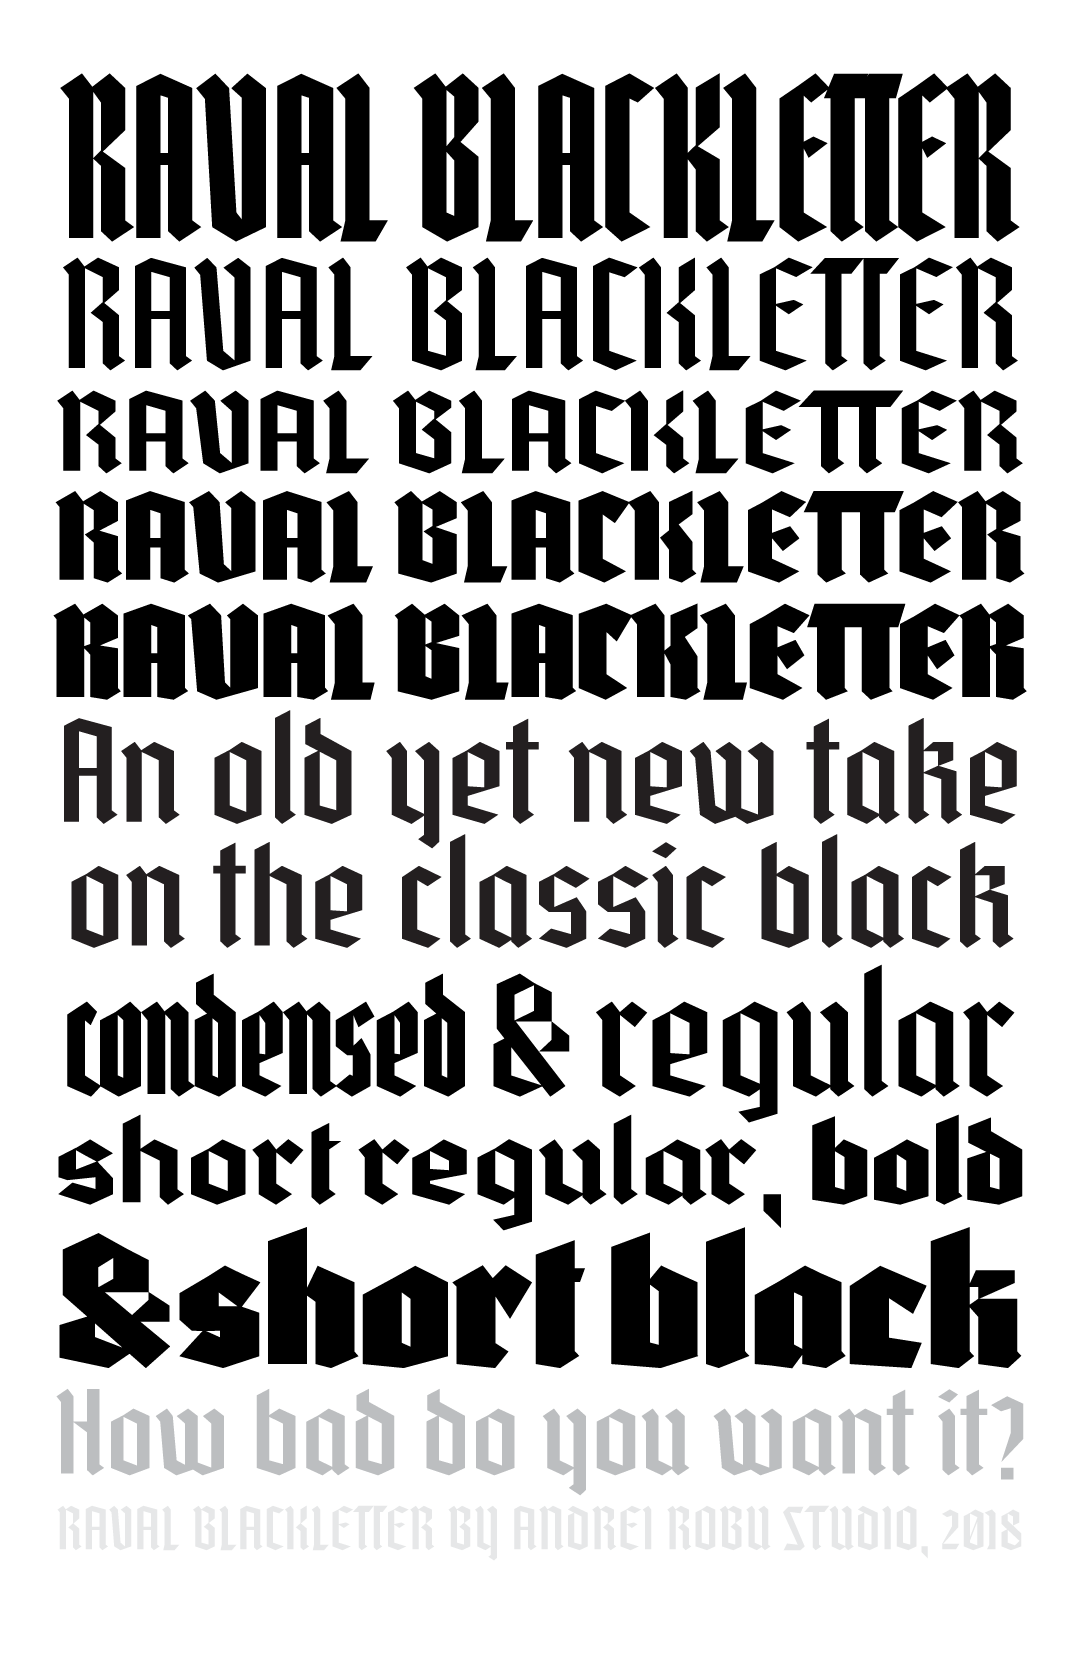 Raval blackletter, a new typeface designed by Andrei Robu. Available on www.typeverything.com